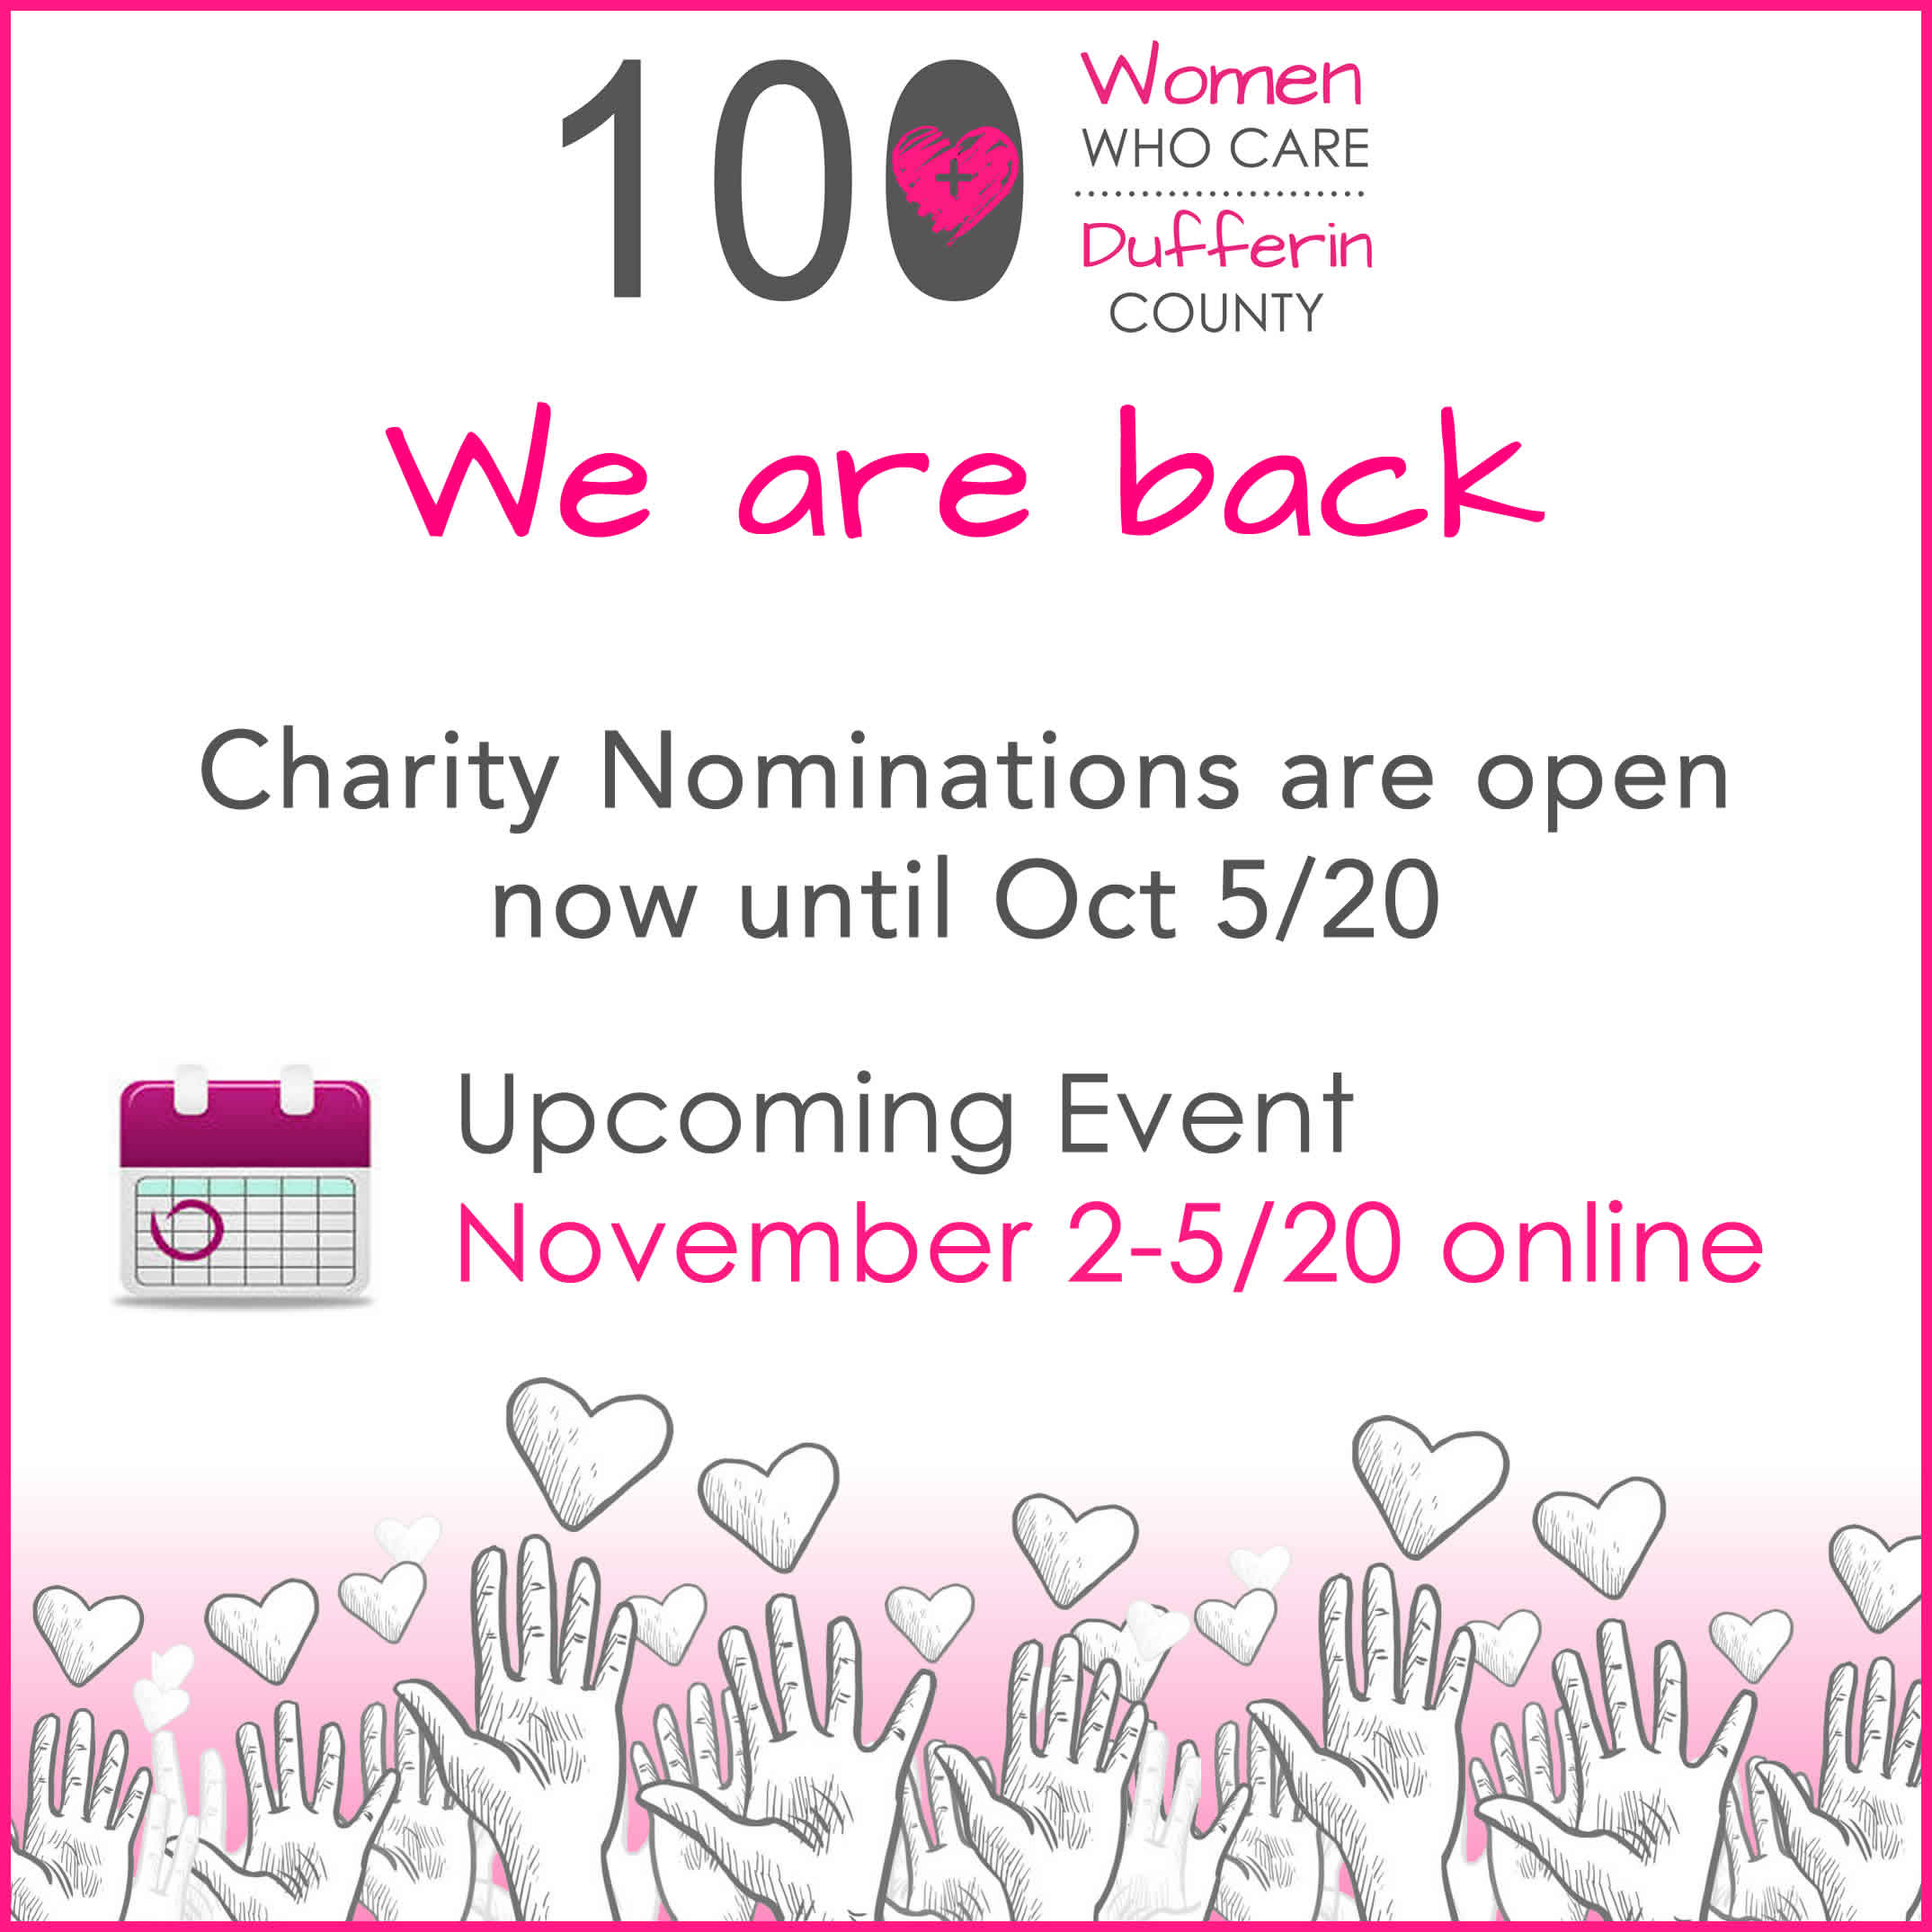 charity nominations are open